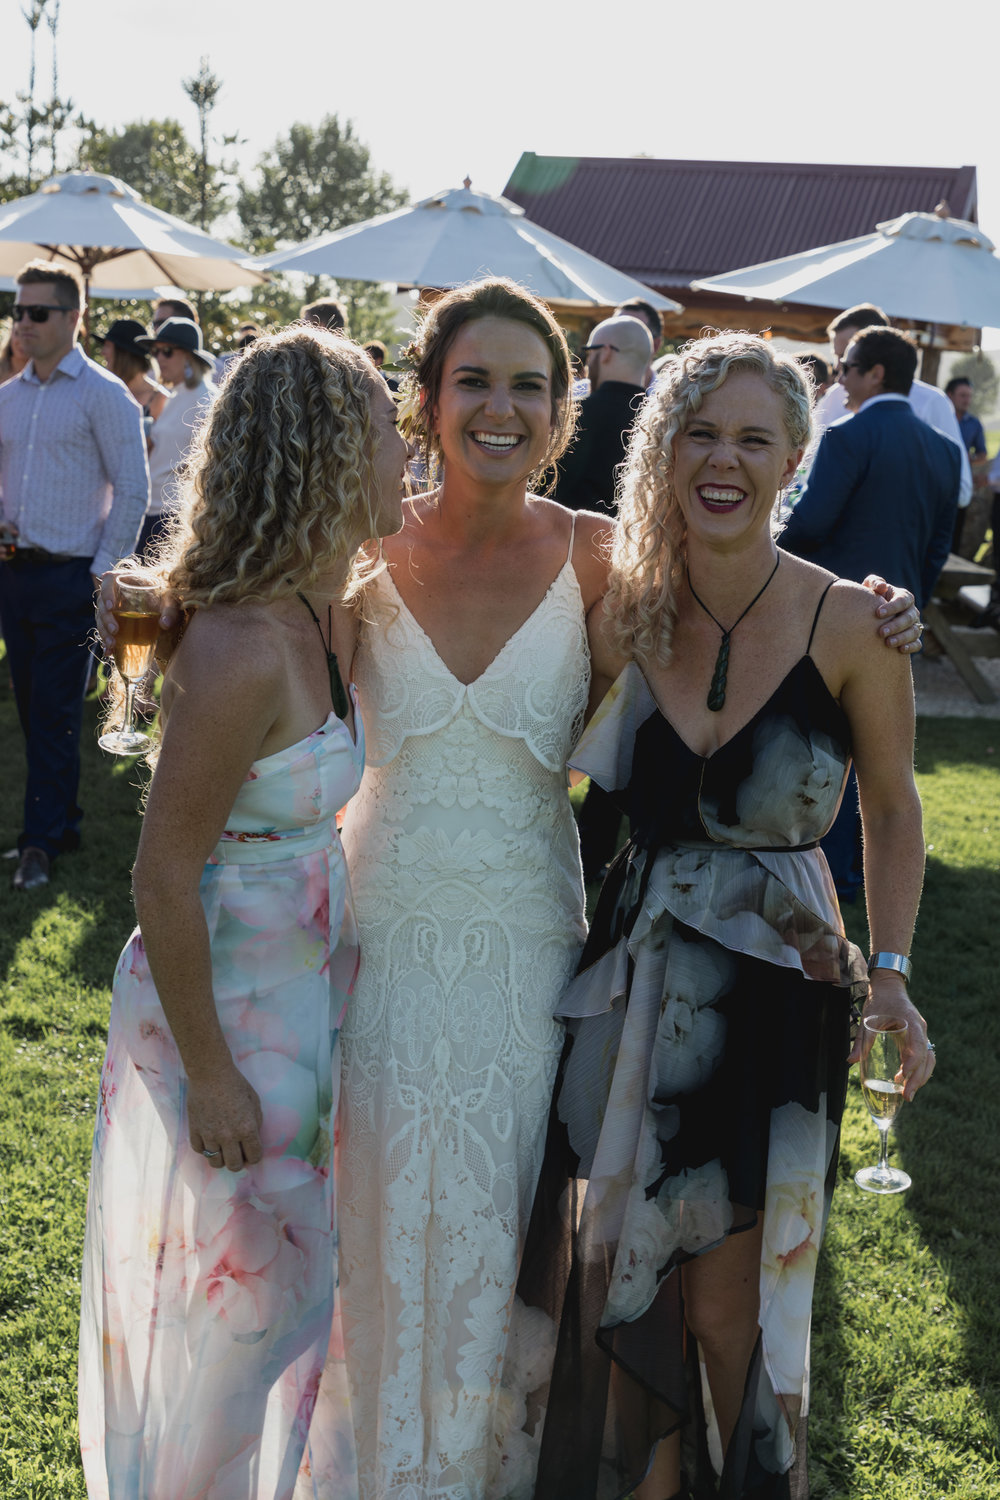 wedding-at-the-red-barn-new-zealand-wedding-photographer-twins-laughing-together-with-bride-at-sunset.jpg